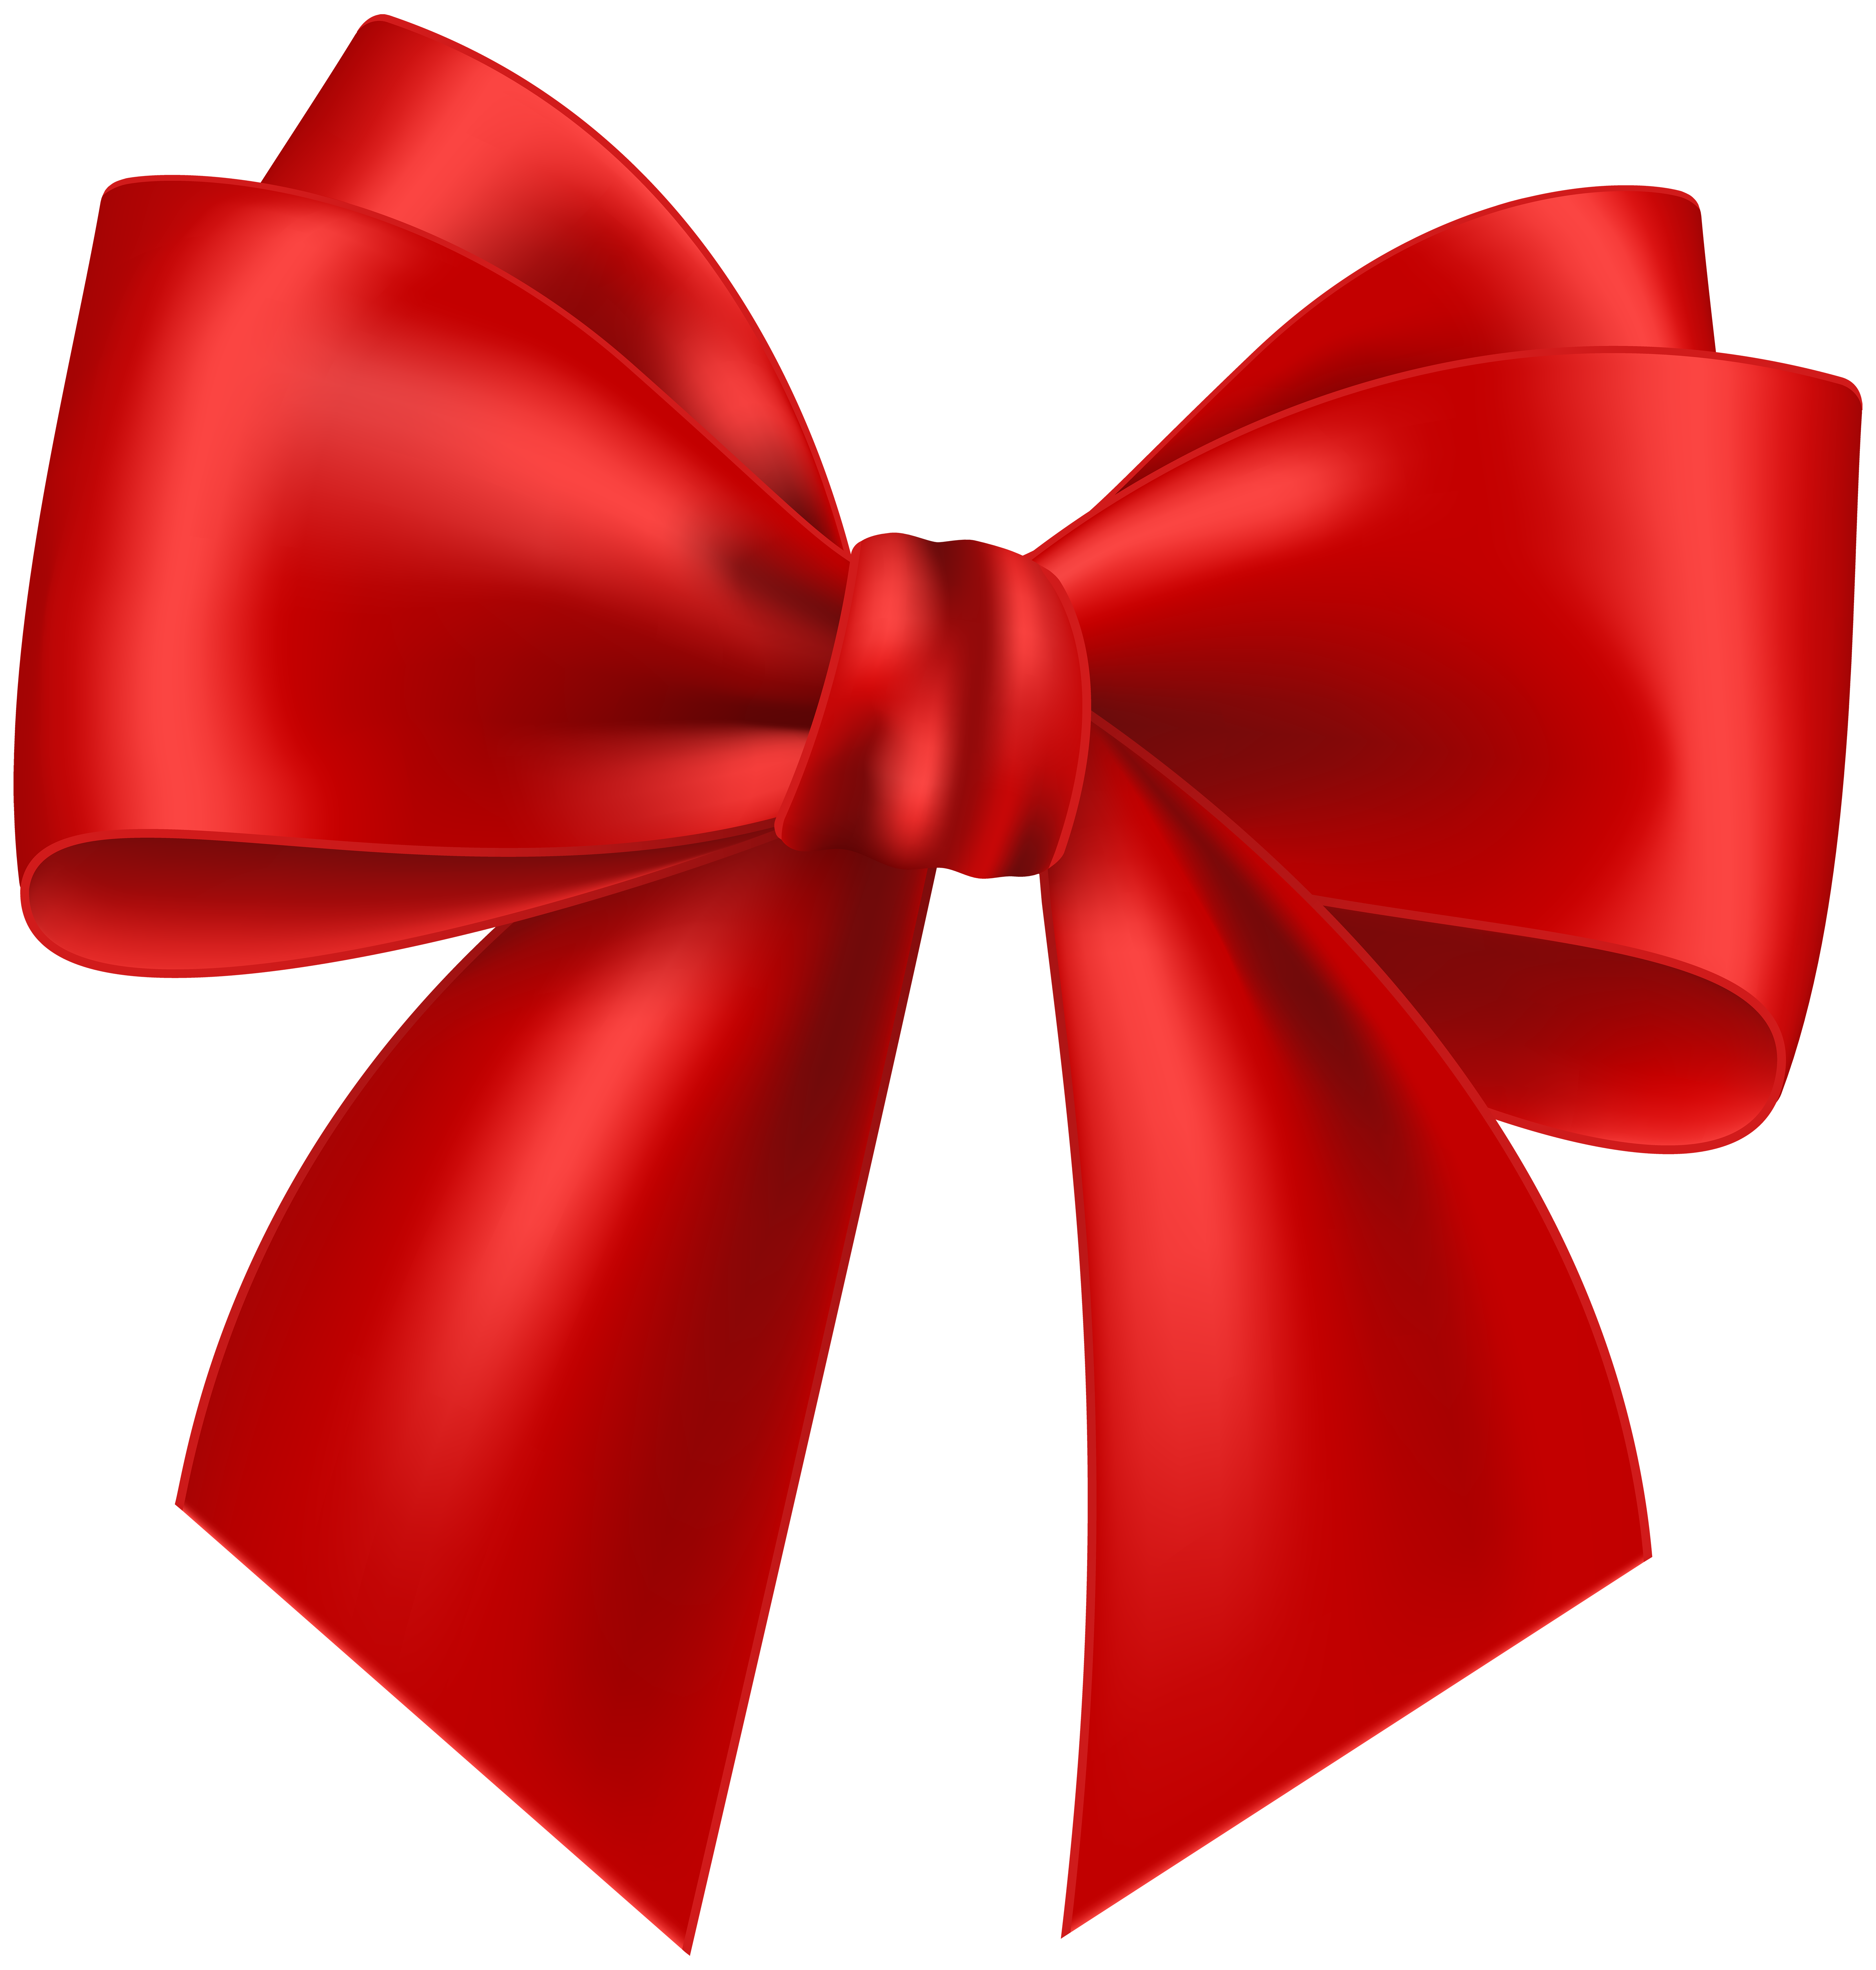 Bows clipart red. Bow transparent clip art